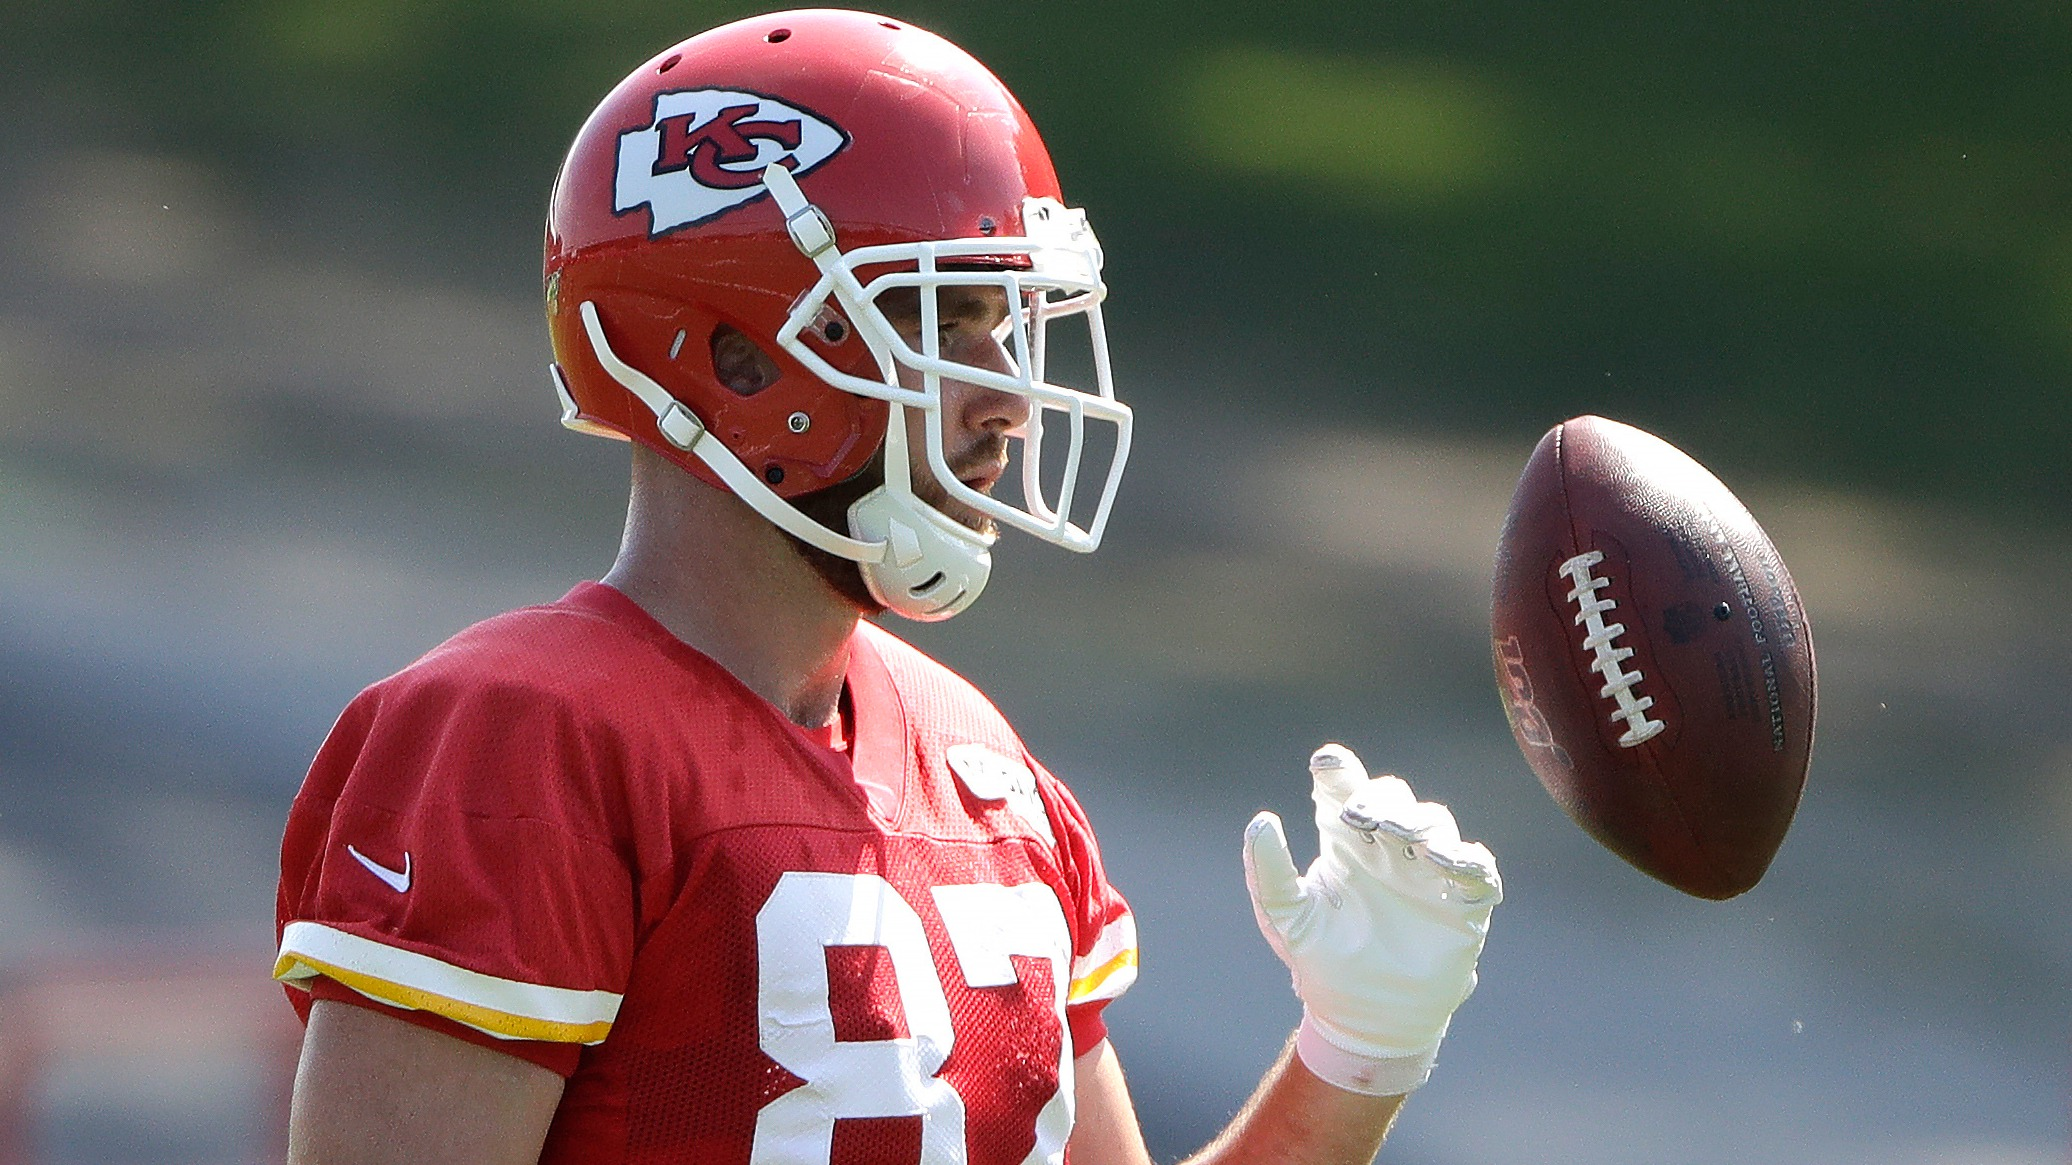 2019 Fantasy Football tight end rankings: Travis Kelce heads